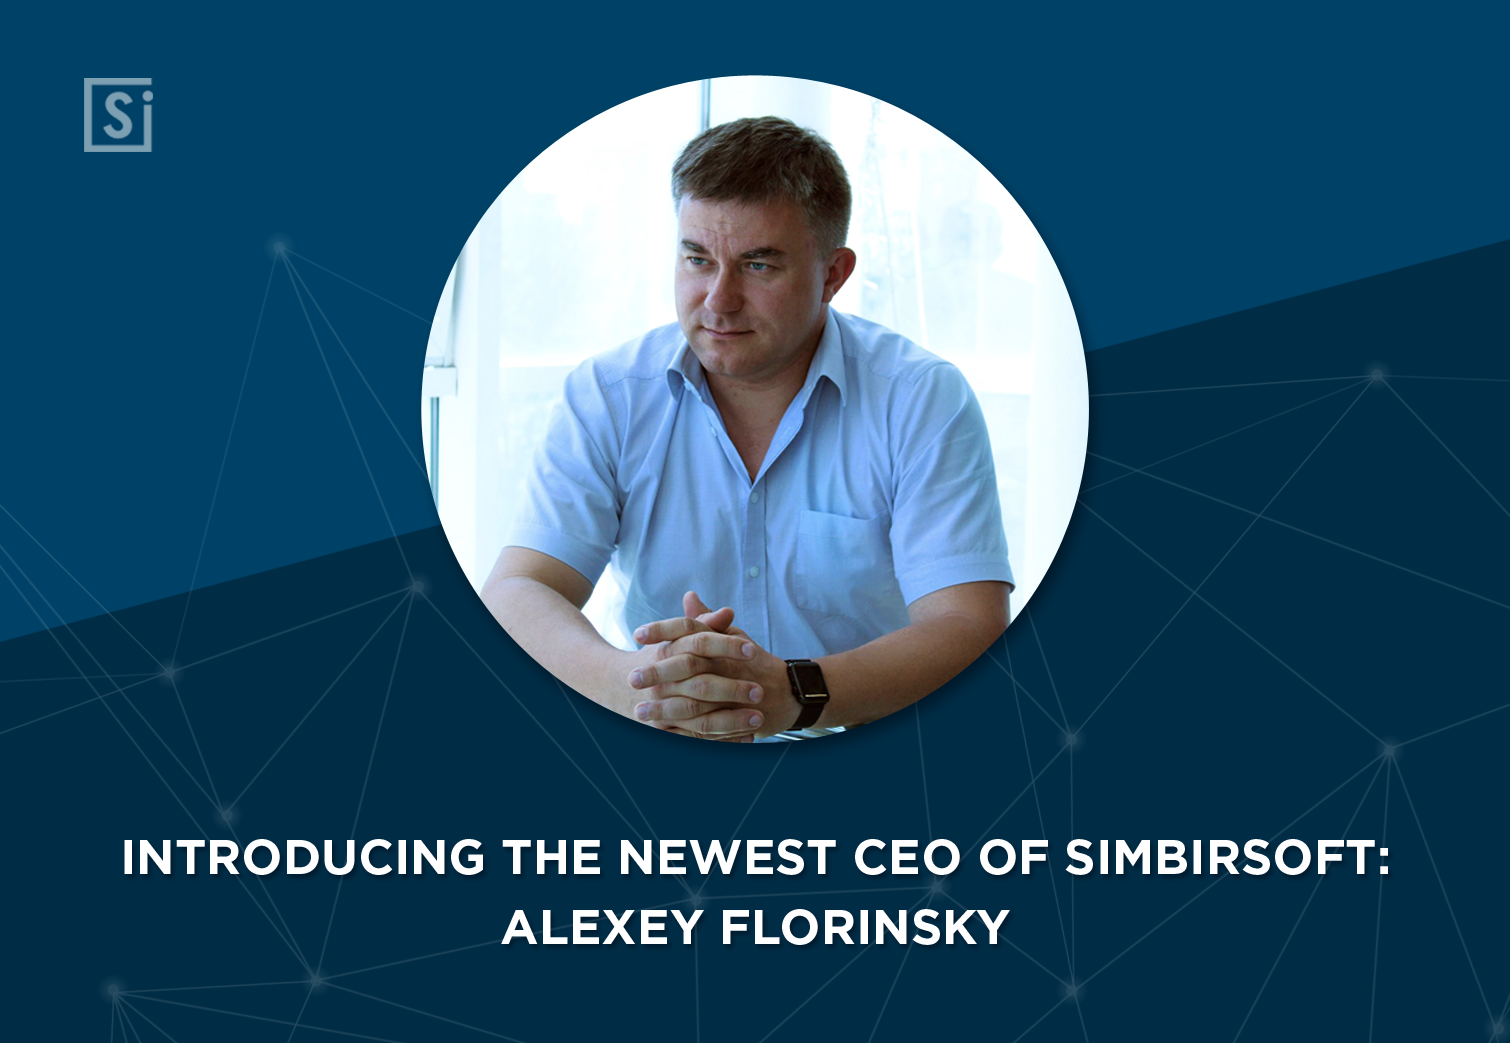 Alexey Florinsky is Appointed as New CEO of SimbirSoft